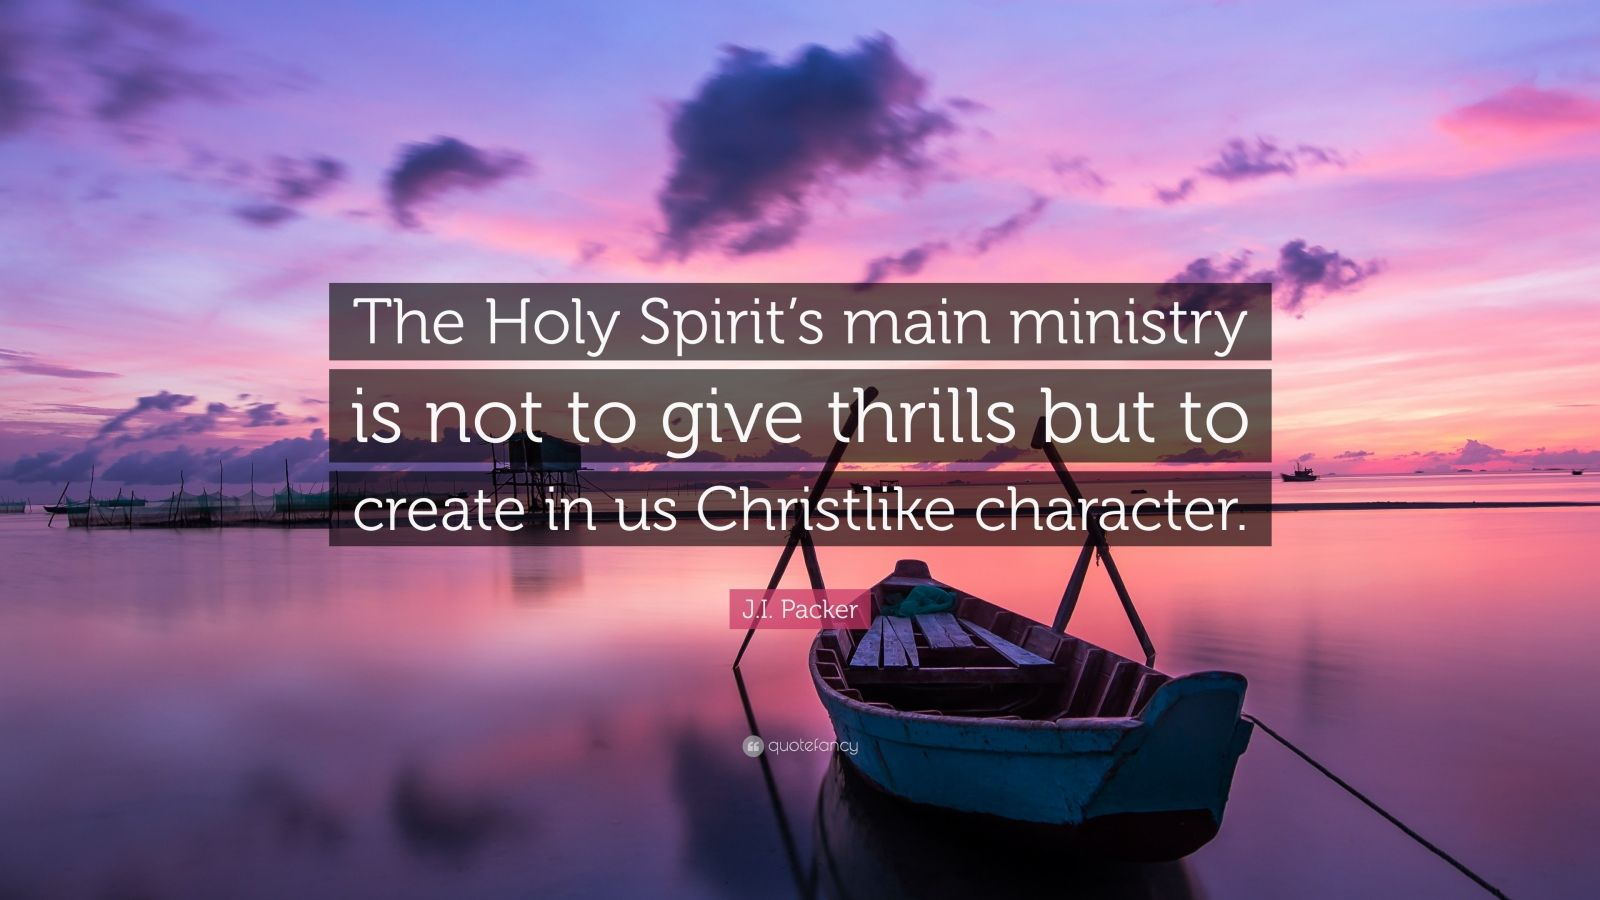 """J.I. Packer Quote: """"The Holy Spirit's main ministry is not to give thrills but to create in us Christlike character."""""""